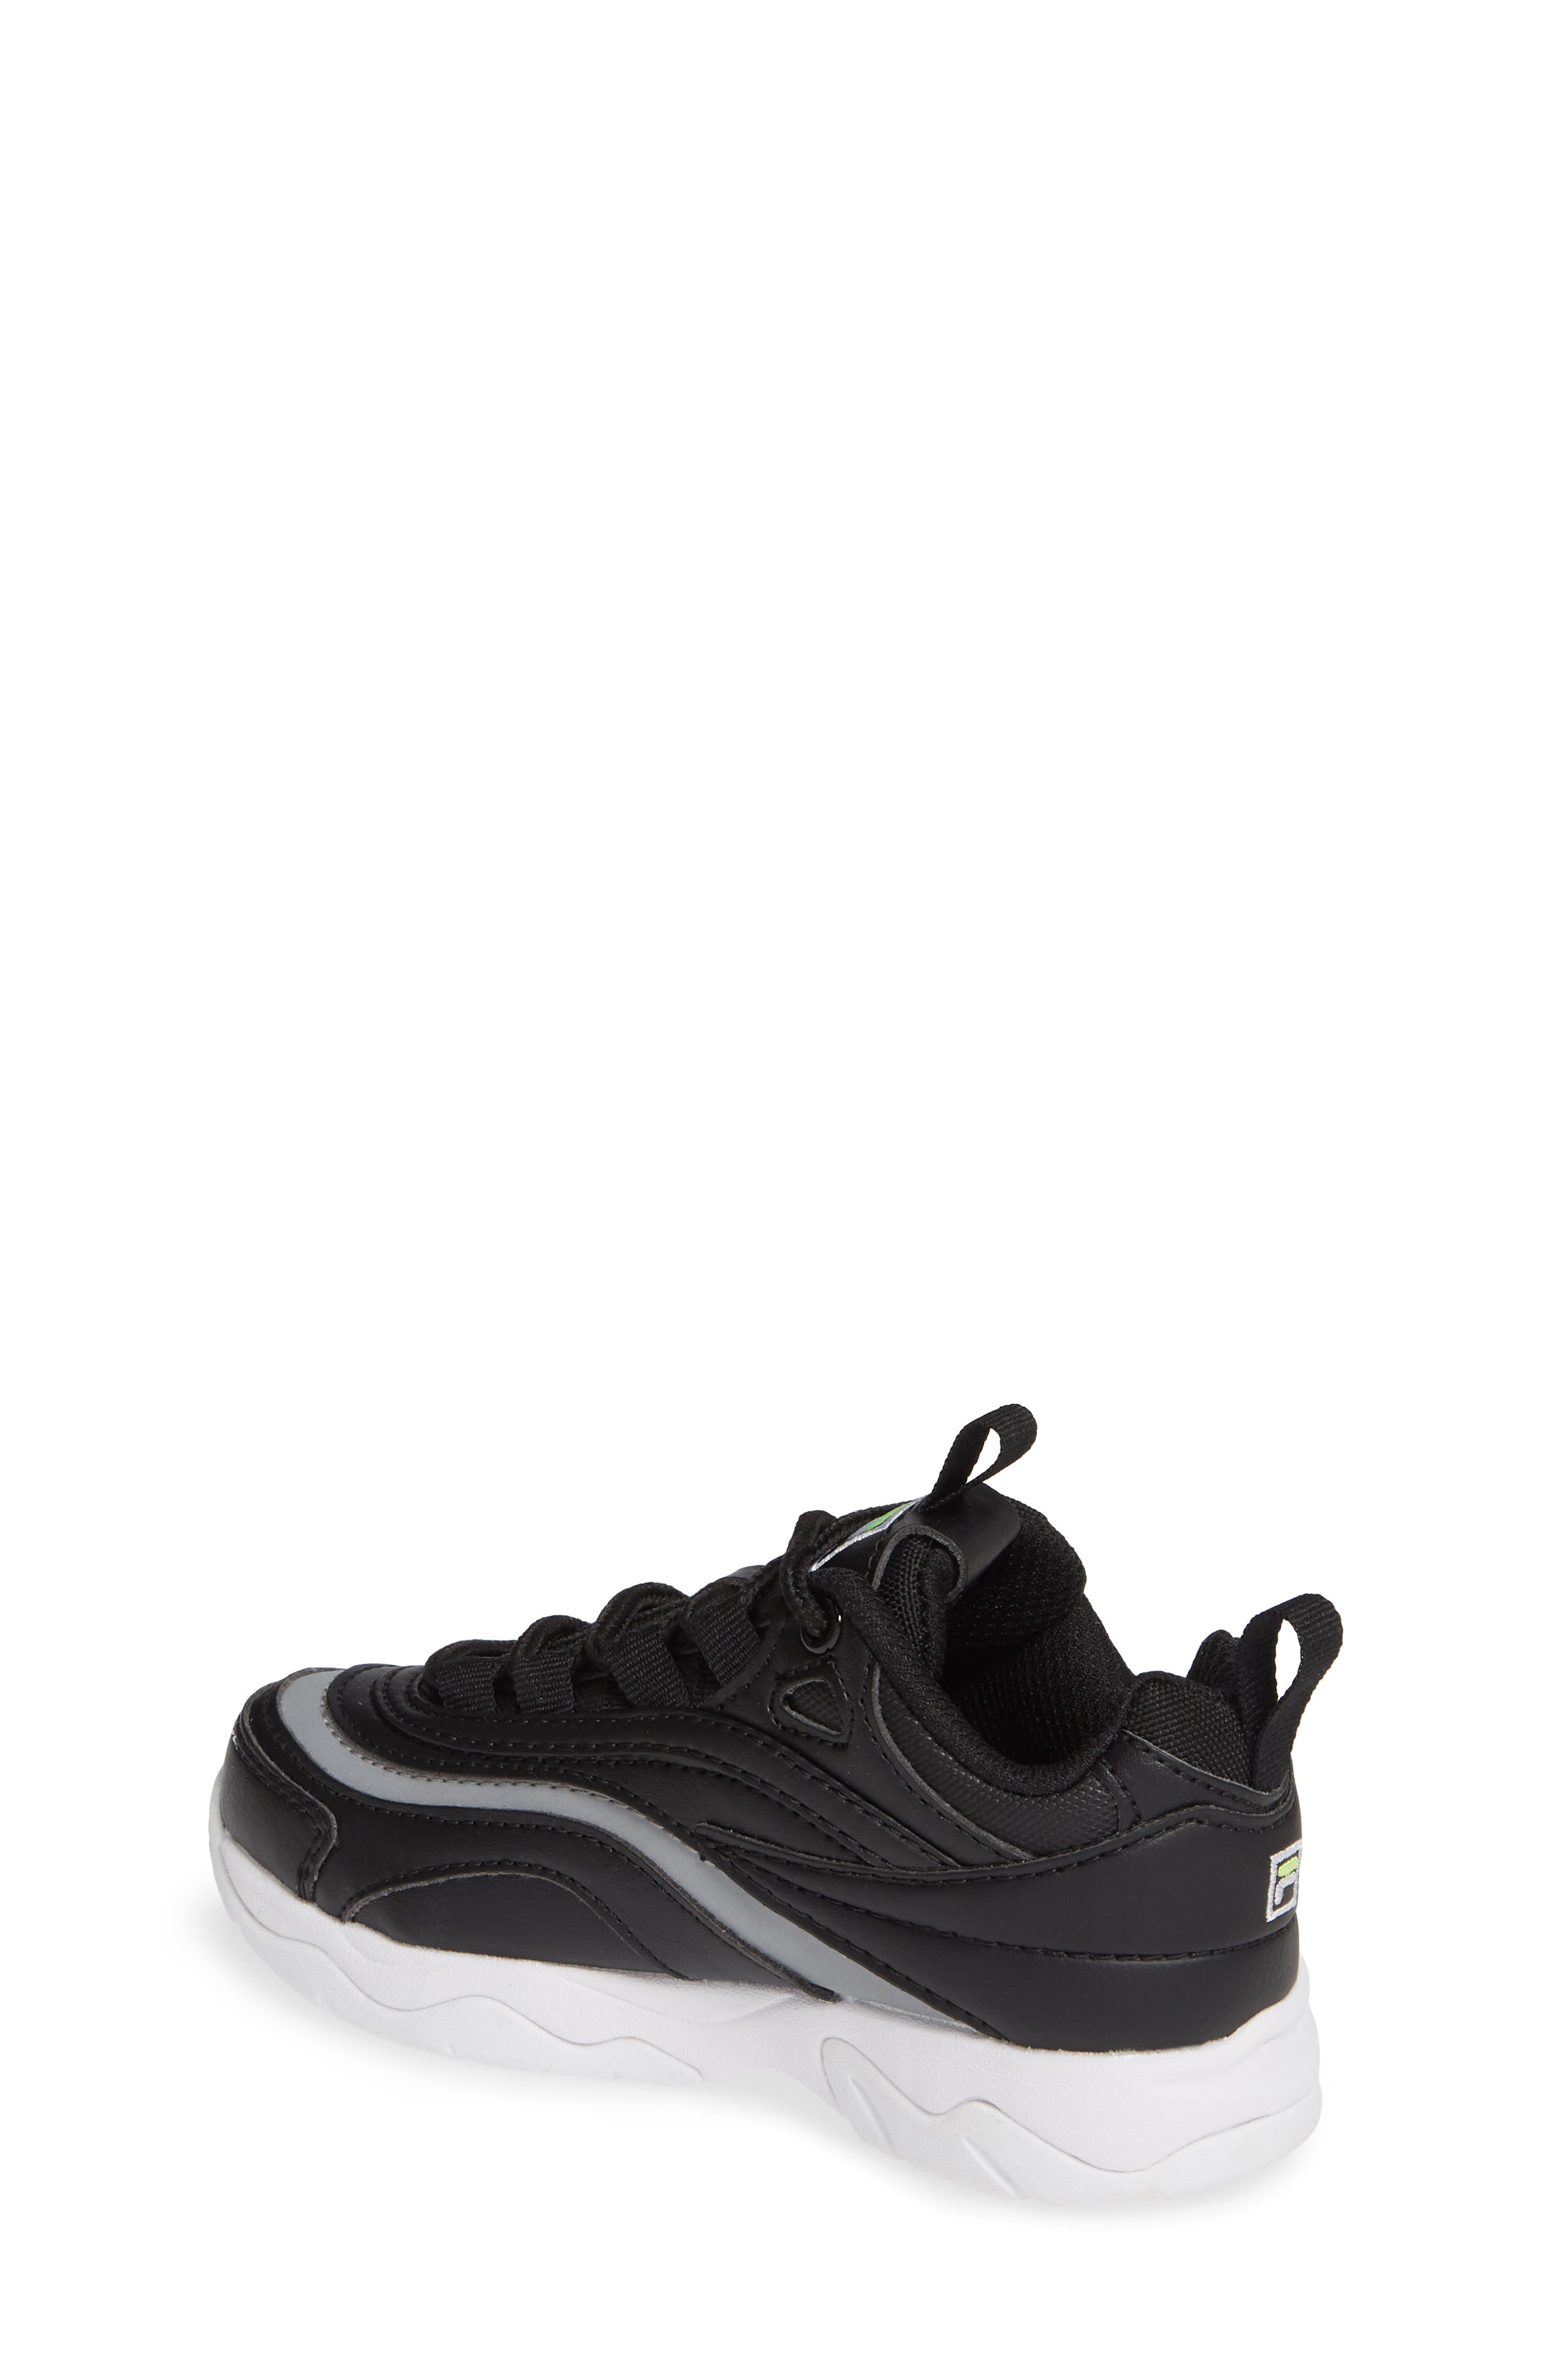 FILA, Ray Sneaker, Alternate thumbnail 2, color, BLACK/ SAFETY YELLOW/ SILVER